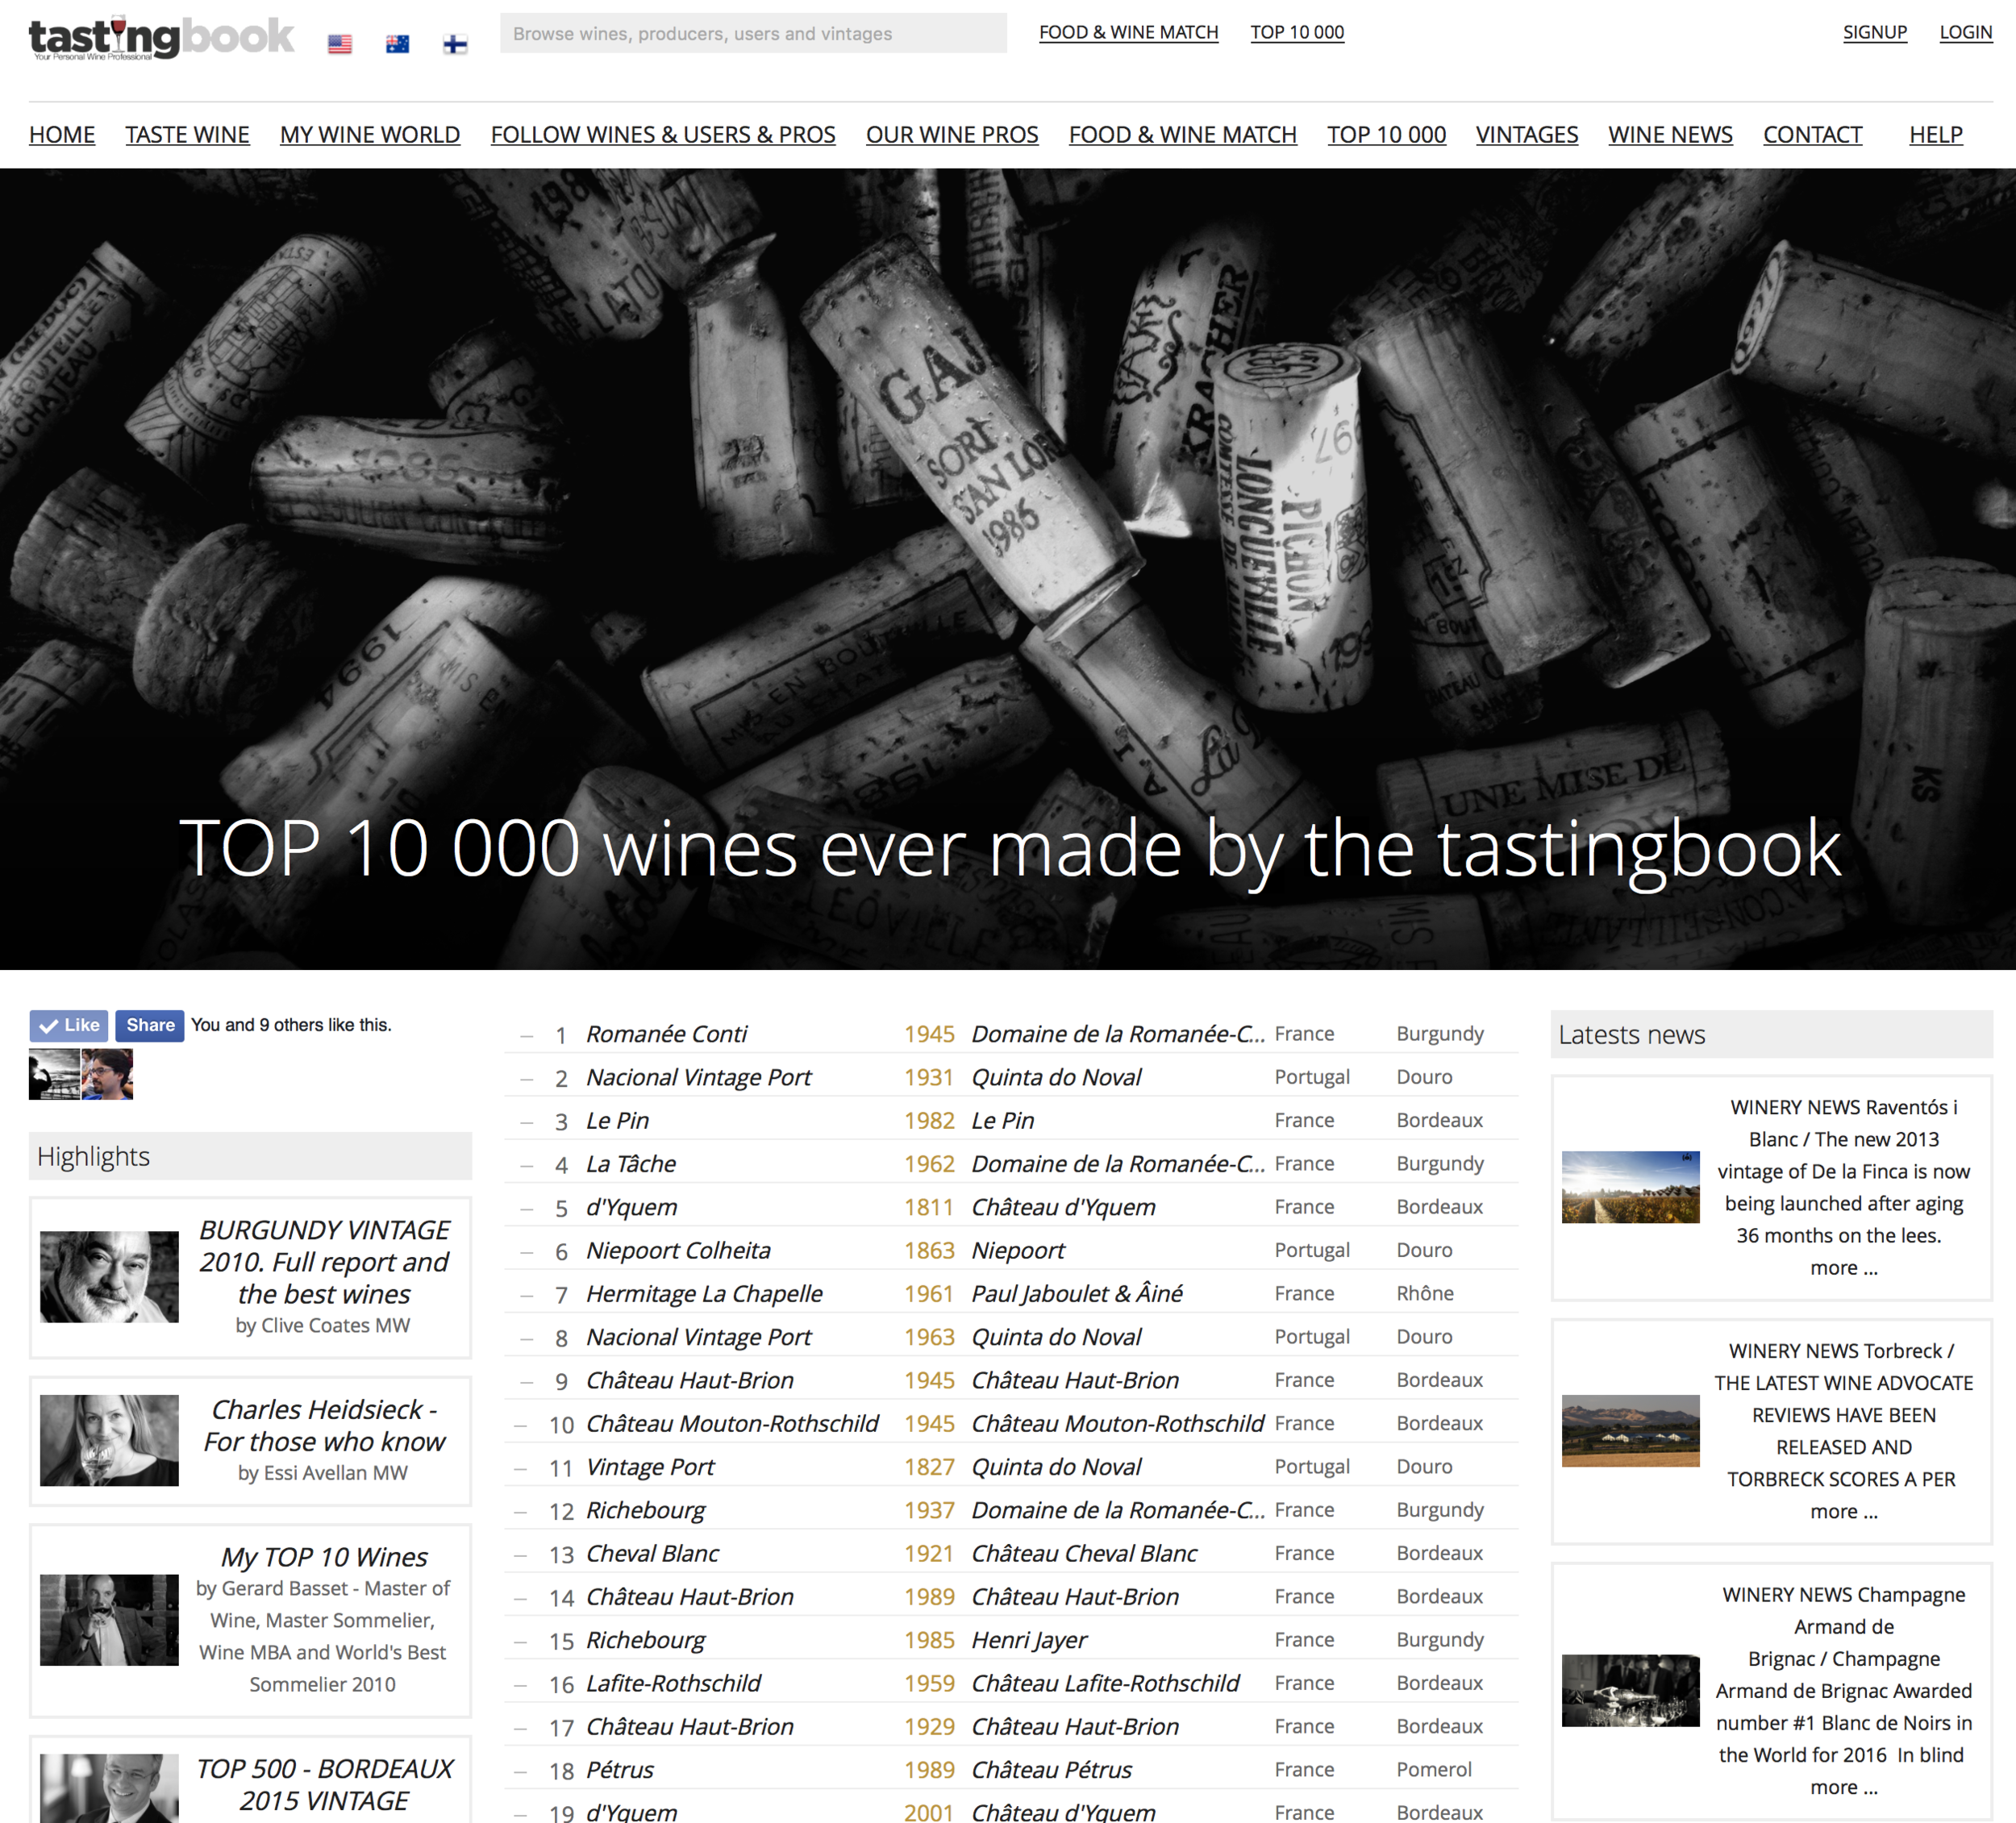 10 000 BEST WINES ever made